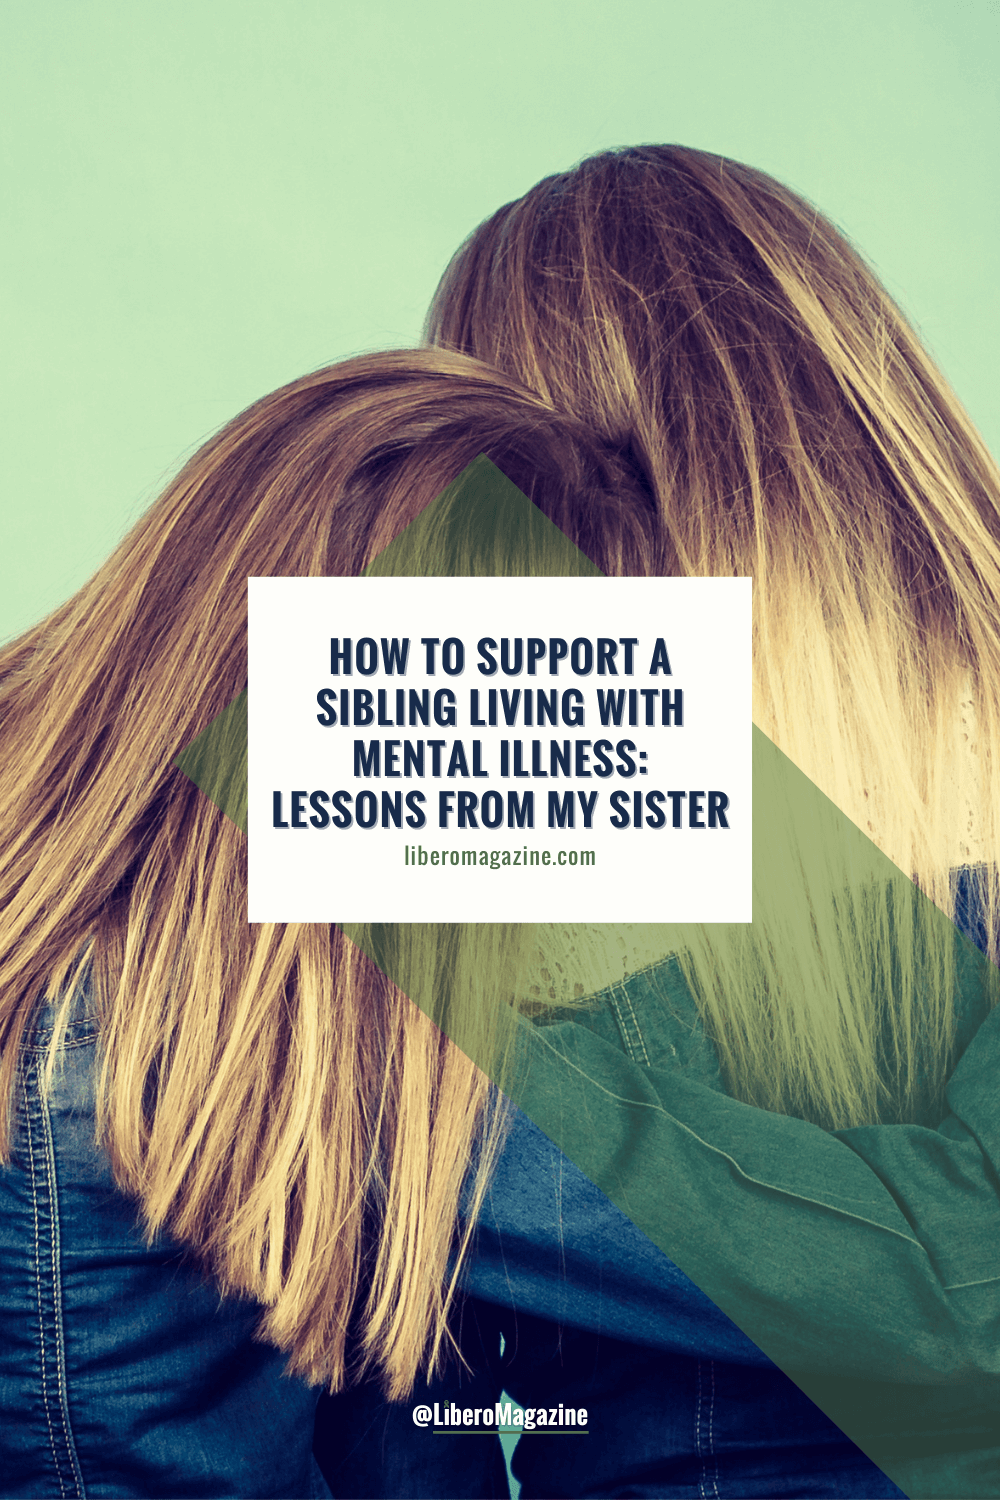 How to Support a Sibling Living With Mental Illness PIN